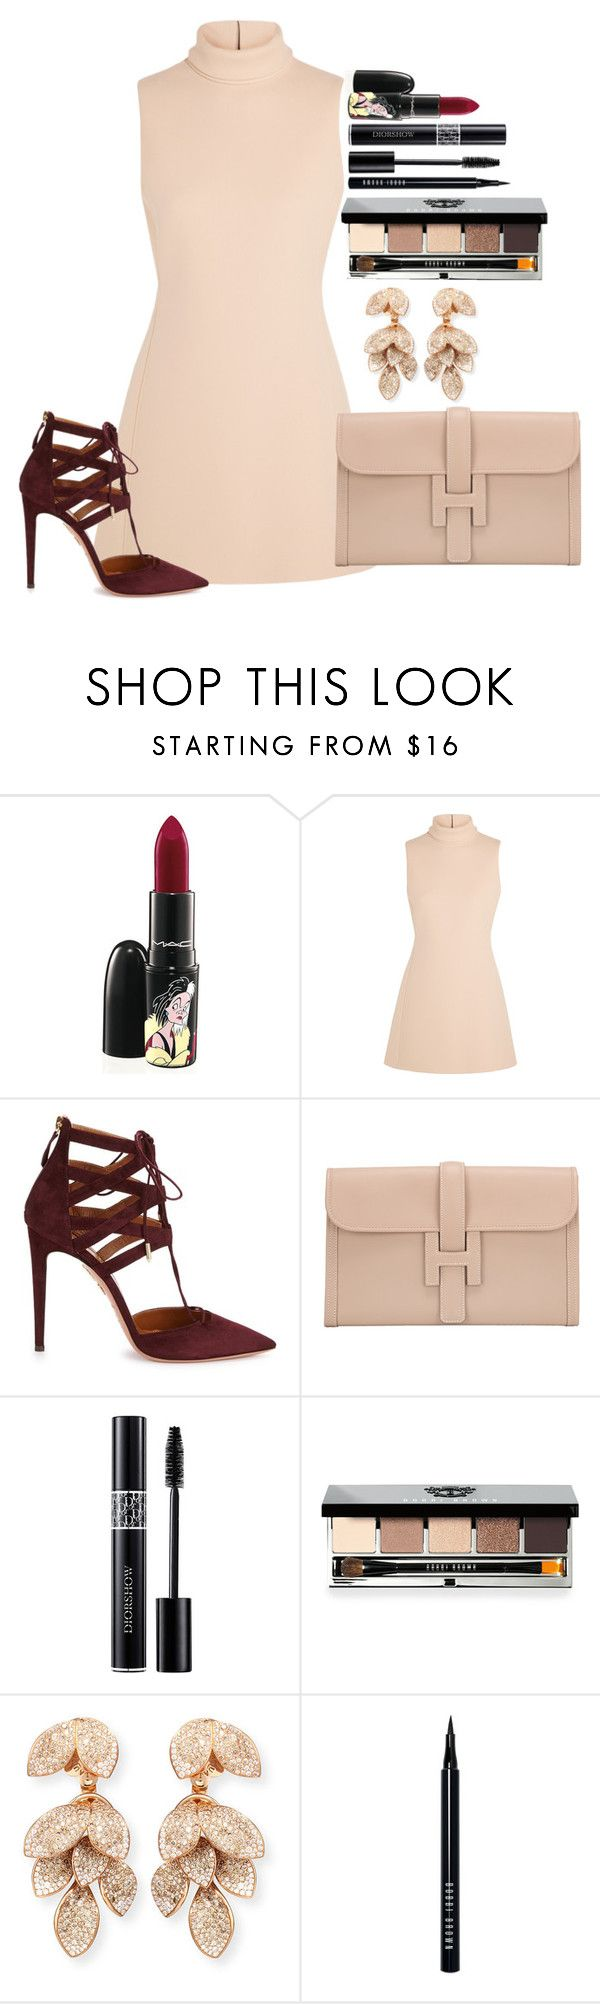 """Untitled #1199"" by fabianarveloc on Polyvore featuring MAC Cosmetics, Calvin Klein Collection, Aquazzura, Hermès, Christian Dior, Bobbi Brown Cosmetics and Pasquale Bruni"